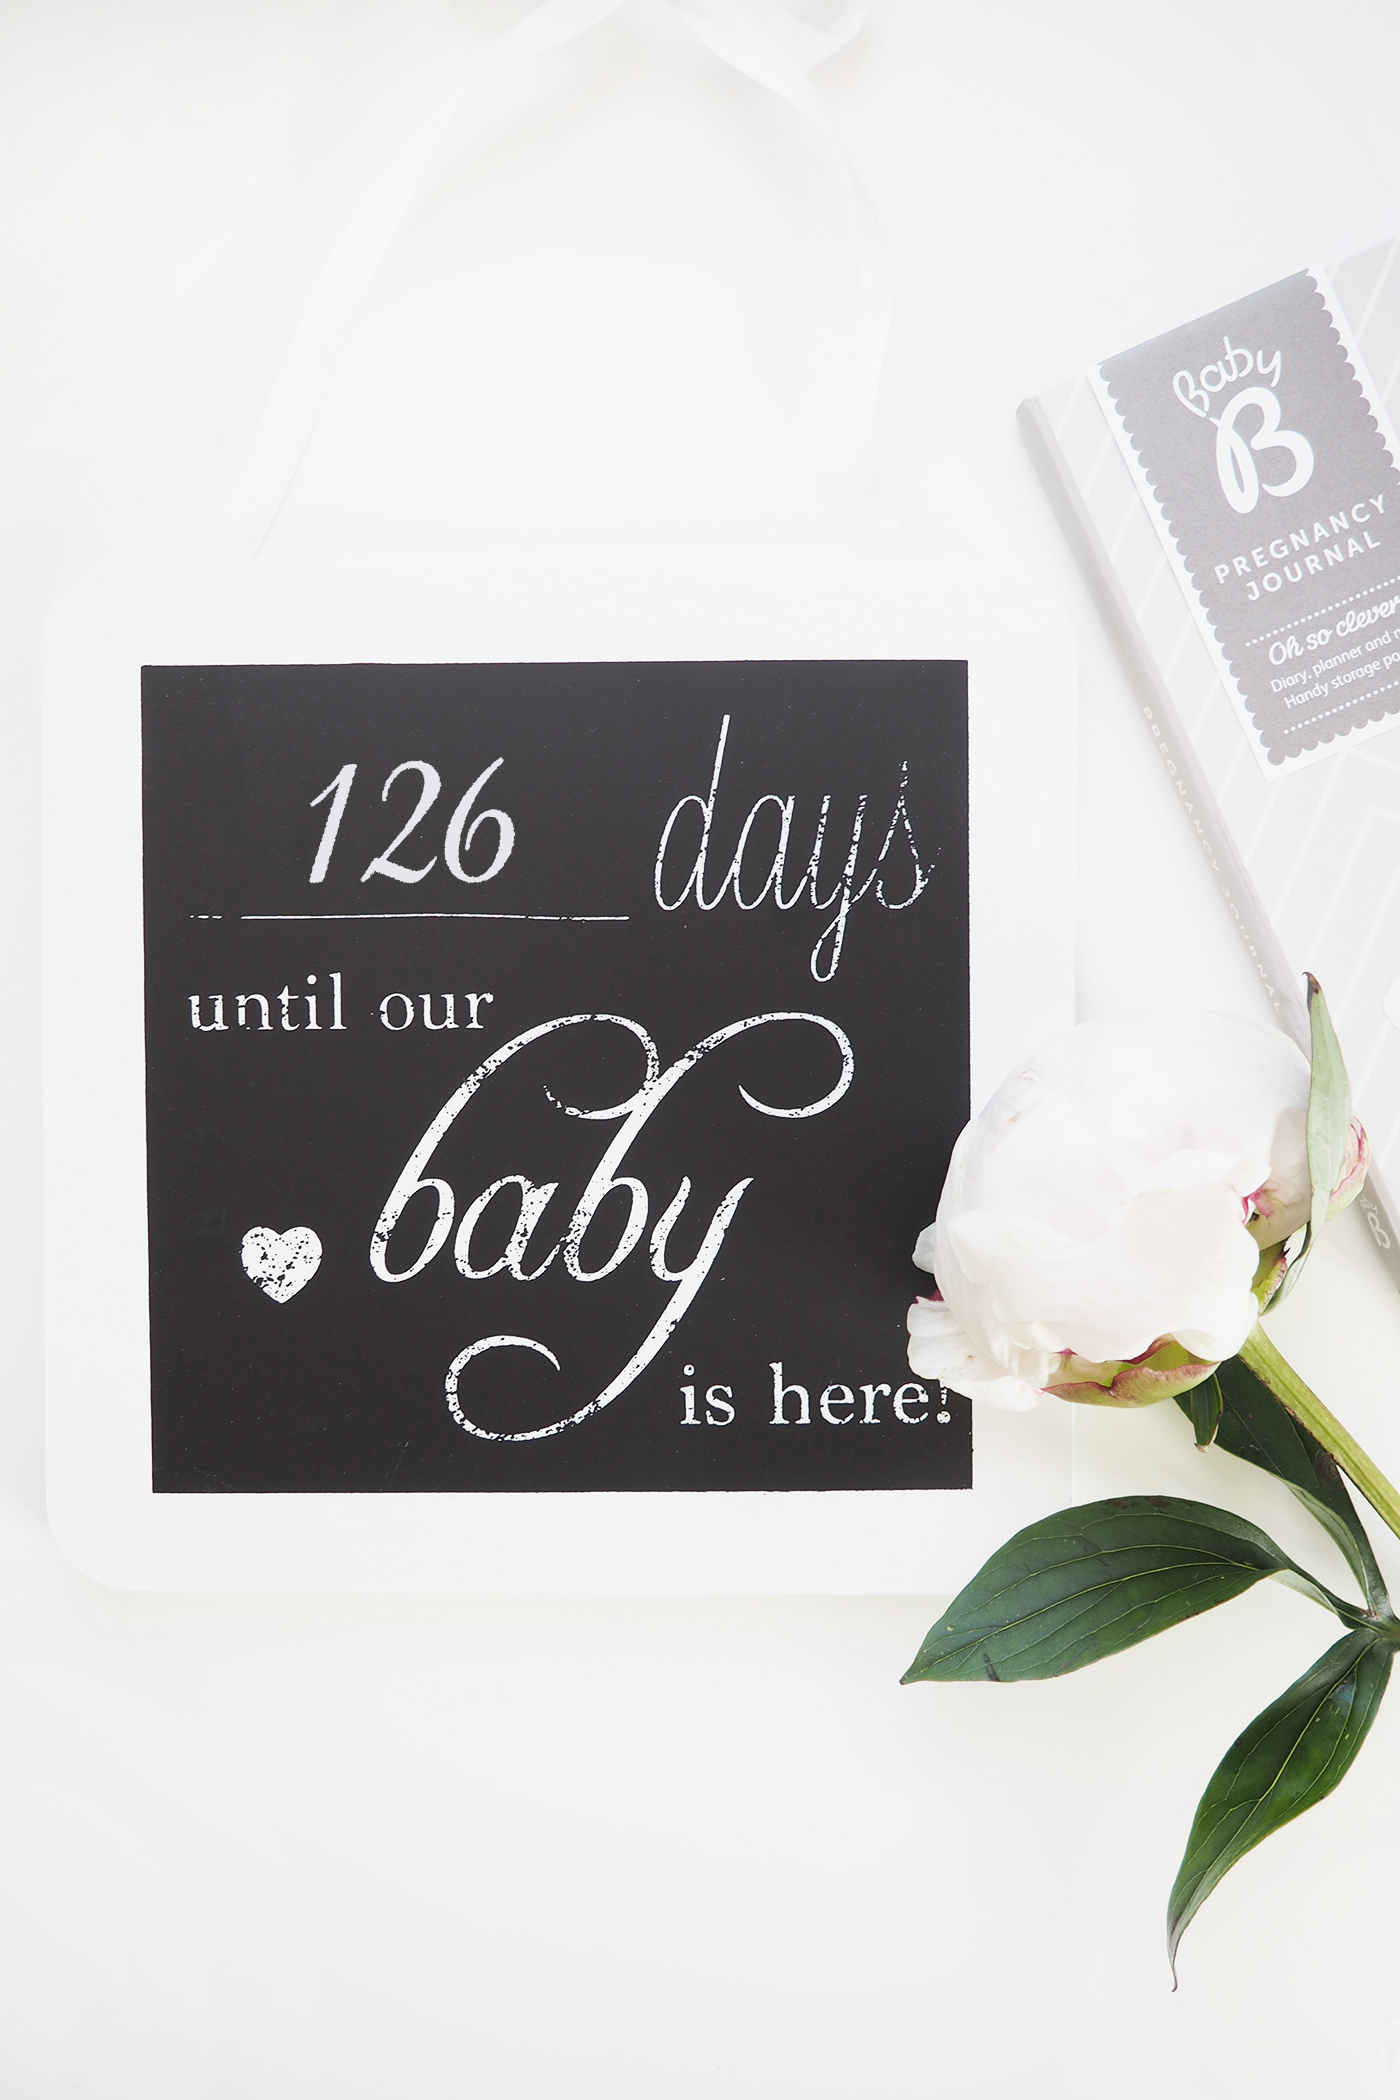 Week 22 Pregnancy Update | Pram Shopping and Morning Sickness